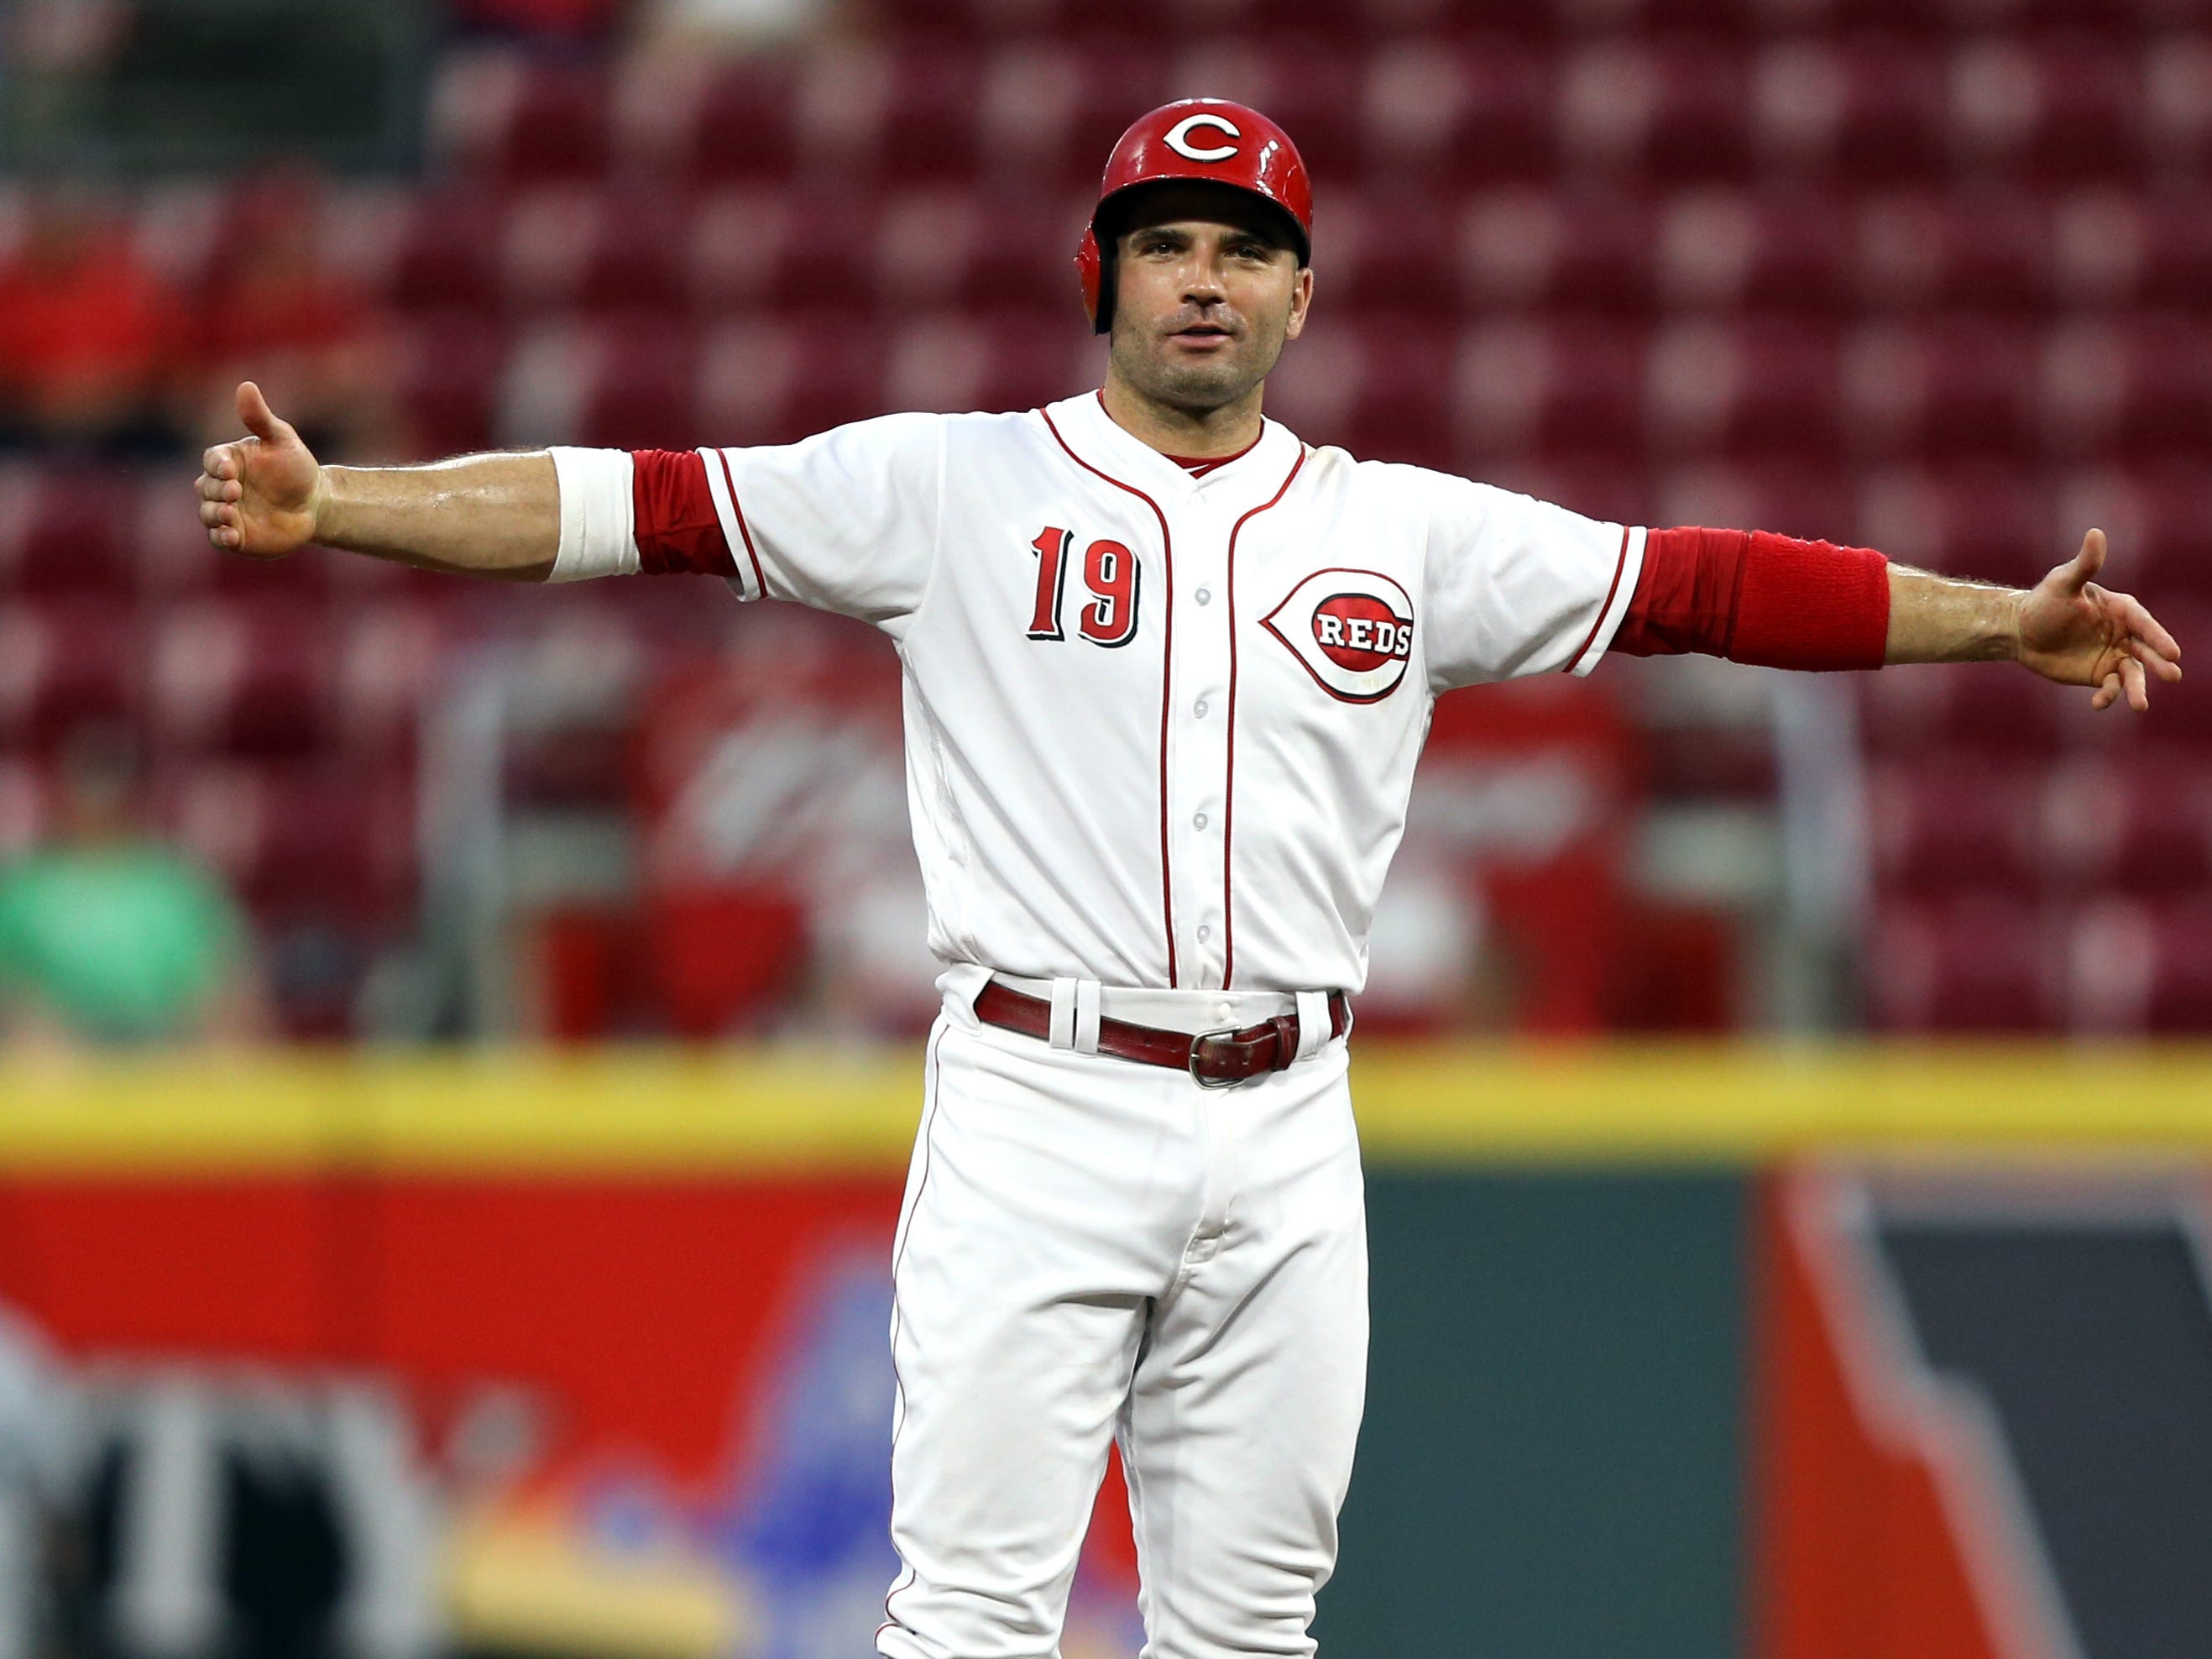 $225 million: Joey Votto, Reds (2012-2021)